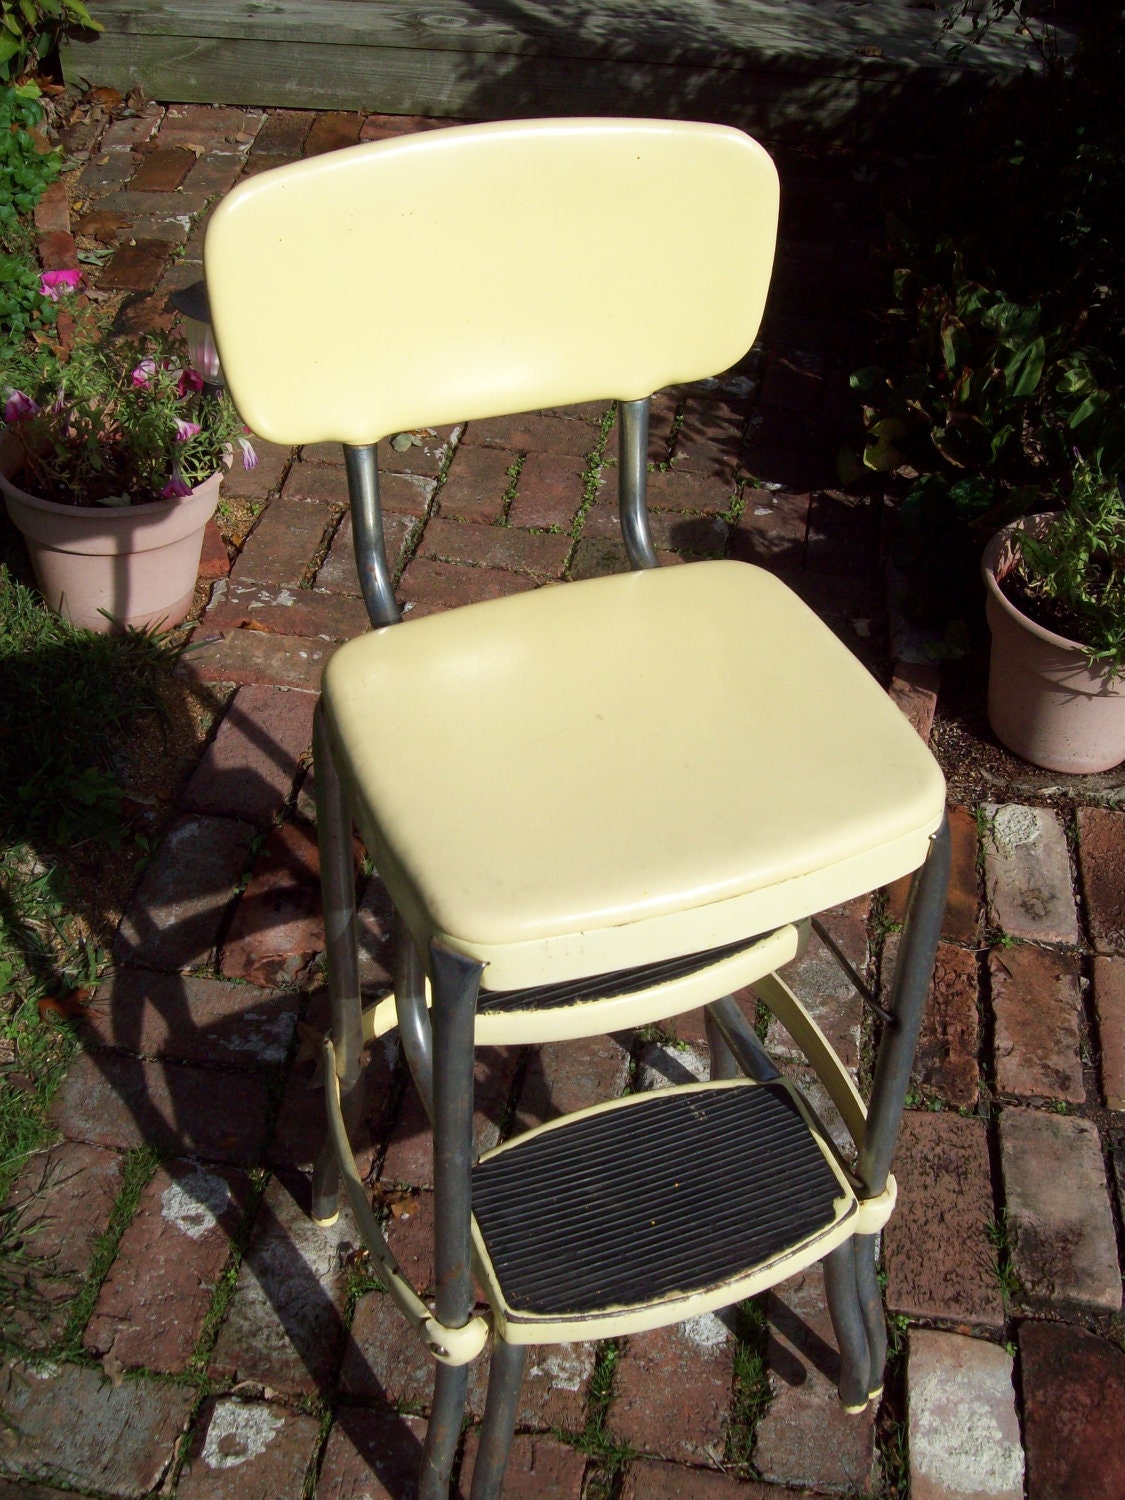 Vintage Cosco Step Stool Chair By Thevrose On Etsy